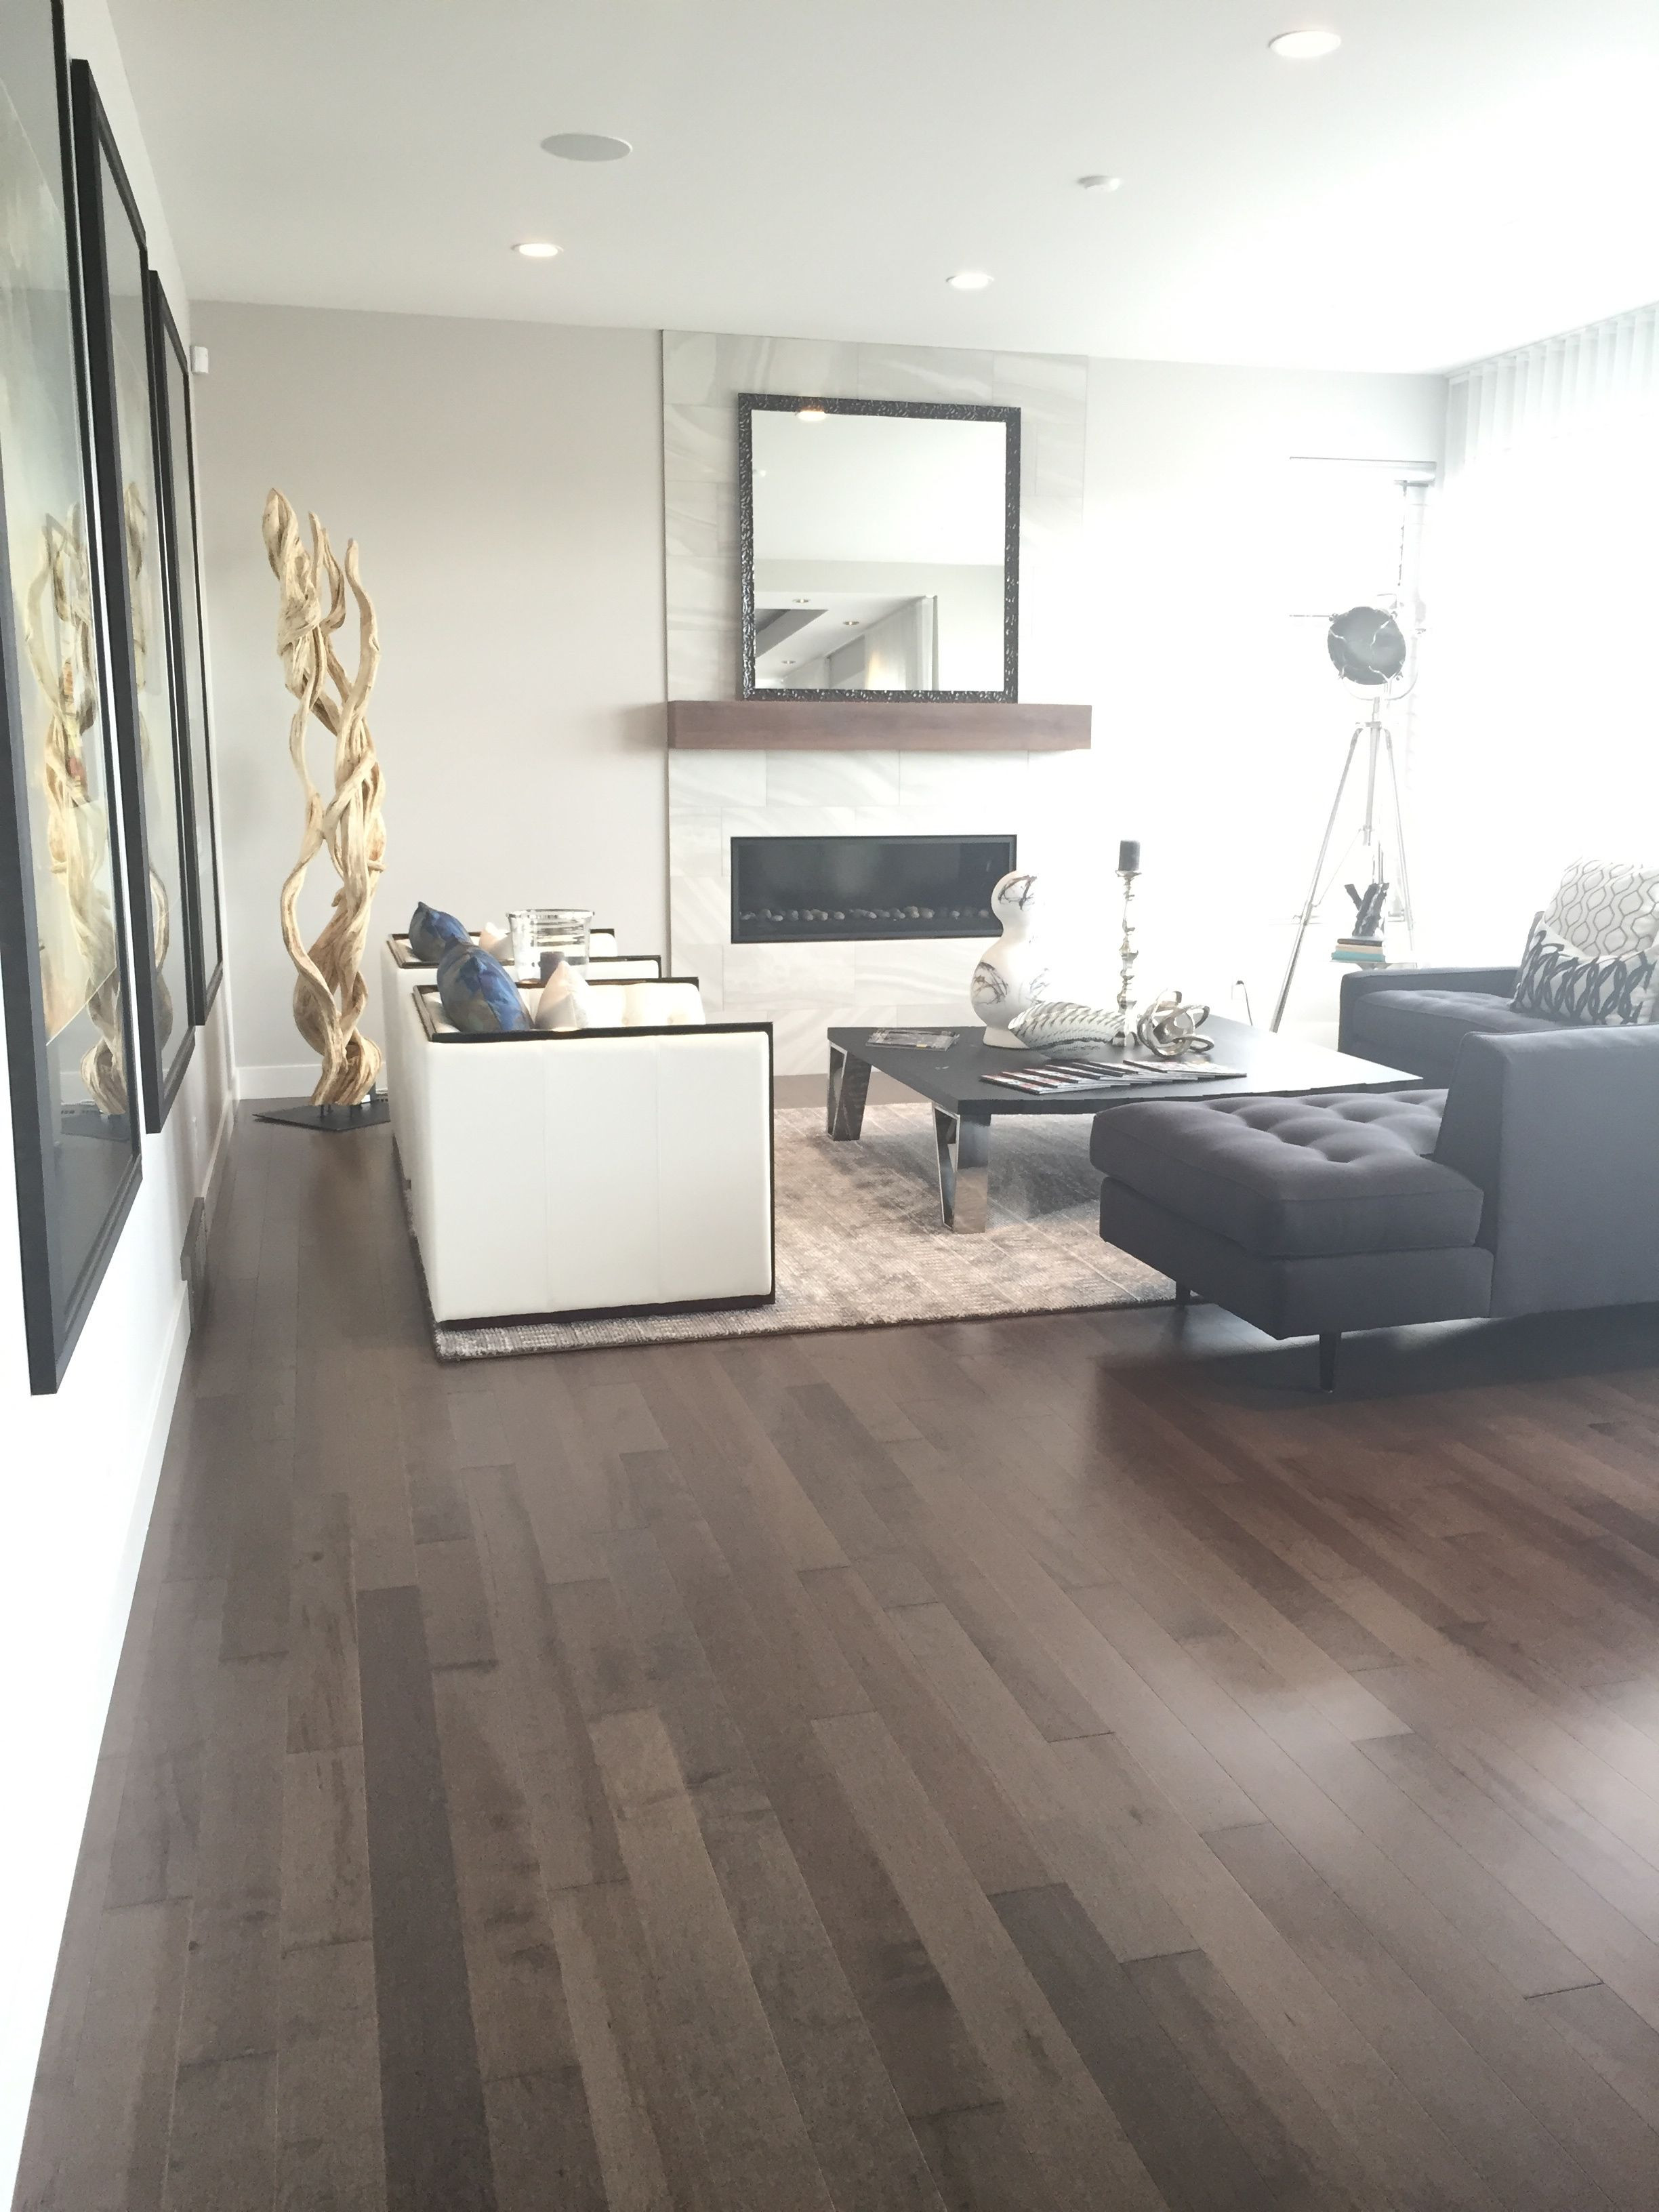 hardwood floor refinishing nashville of smoky grey essential hard maple tradition lauzon hardwood regarding beautiful living room from the cantata showhome featuring lauzons smokey grey hard maple hardwood flooring from the essential collection